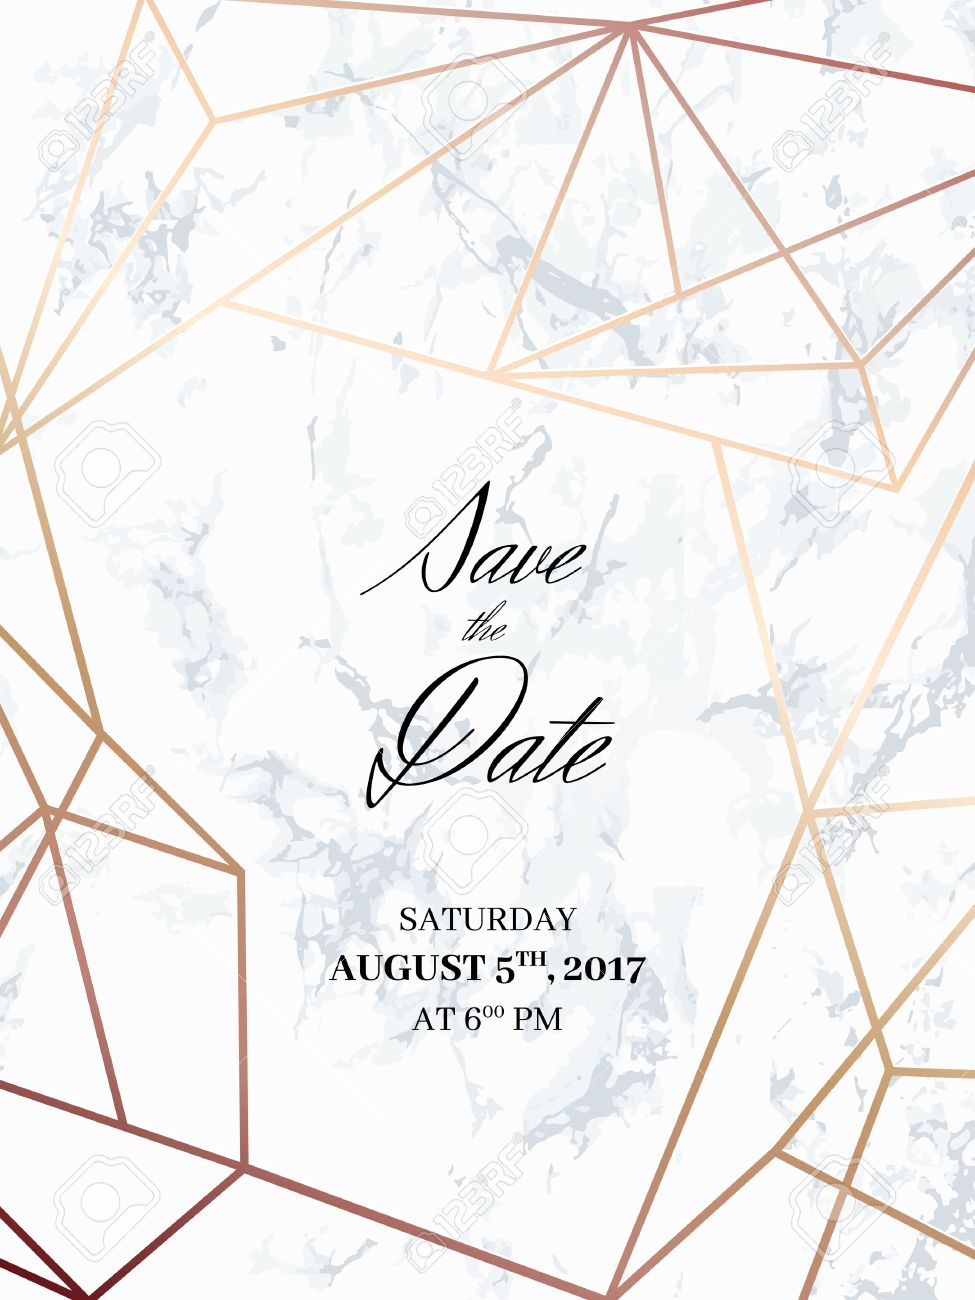 Save The Date Design Template Invitation To A Holiday Party - Holiday save the date templates free